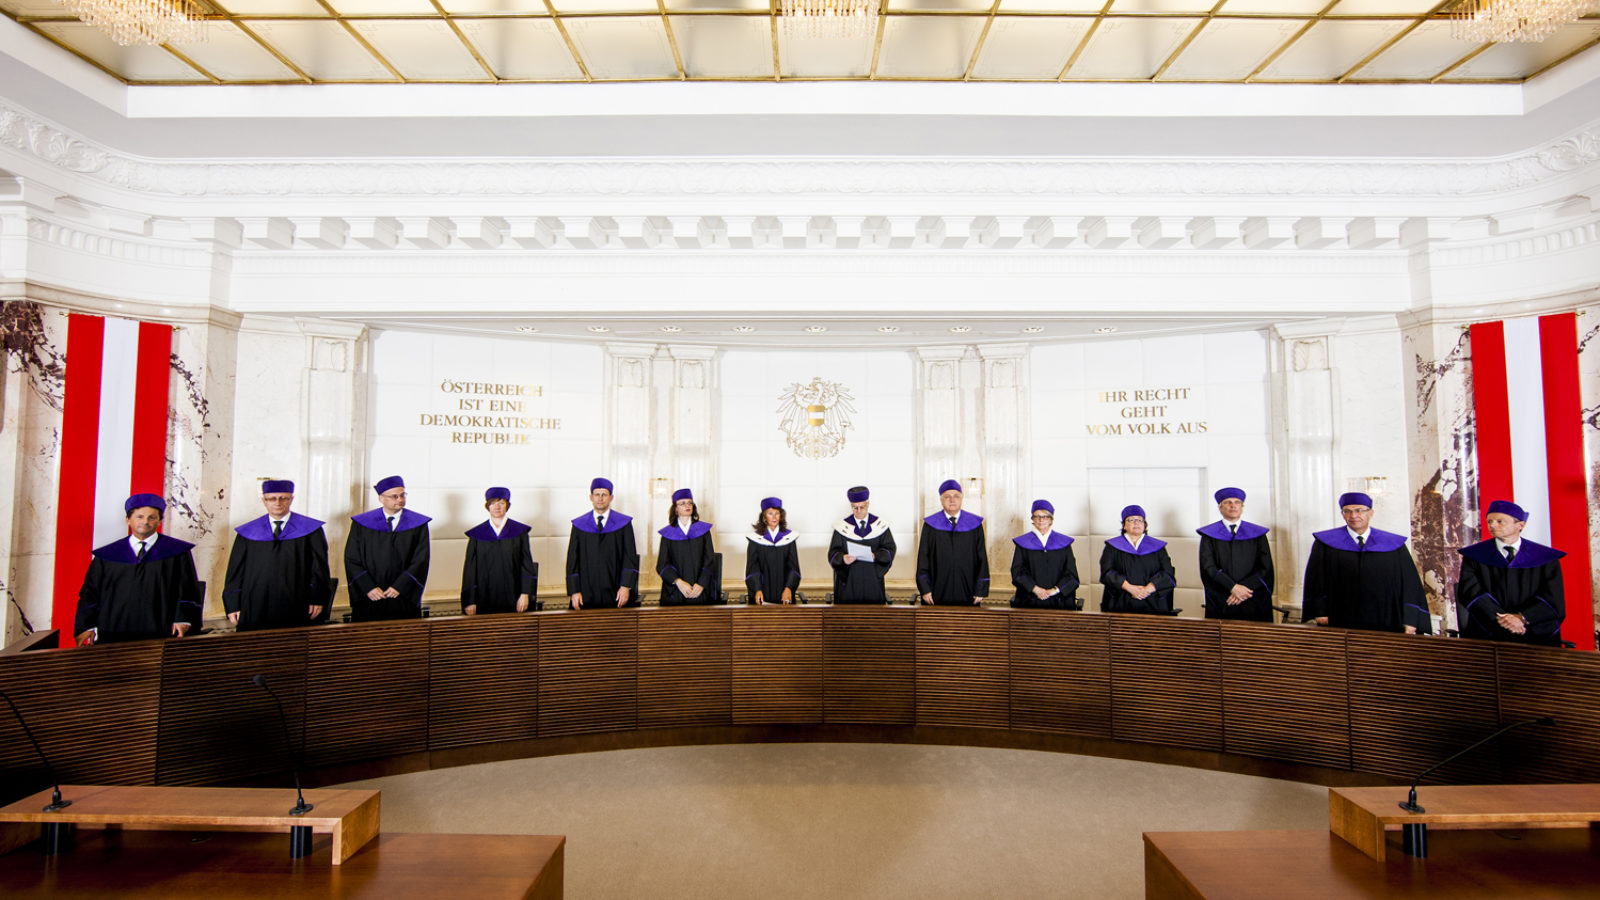 Members of the Austrian constitutional court stand behind a long wooden table flanked by the Austrian flag.